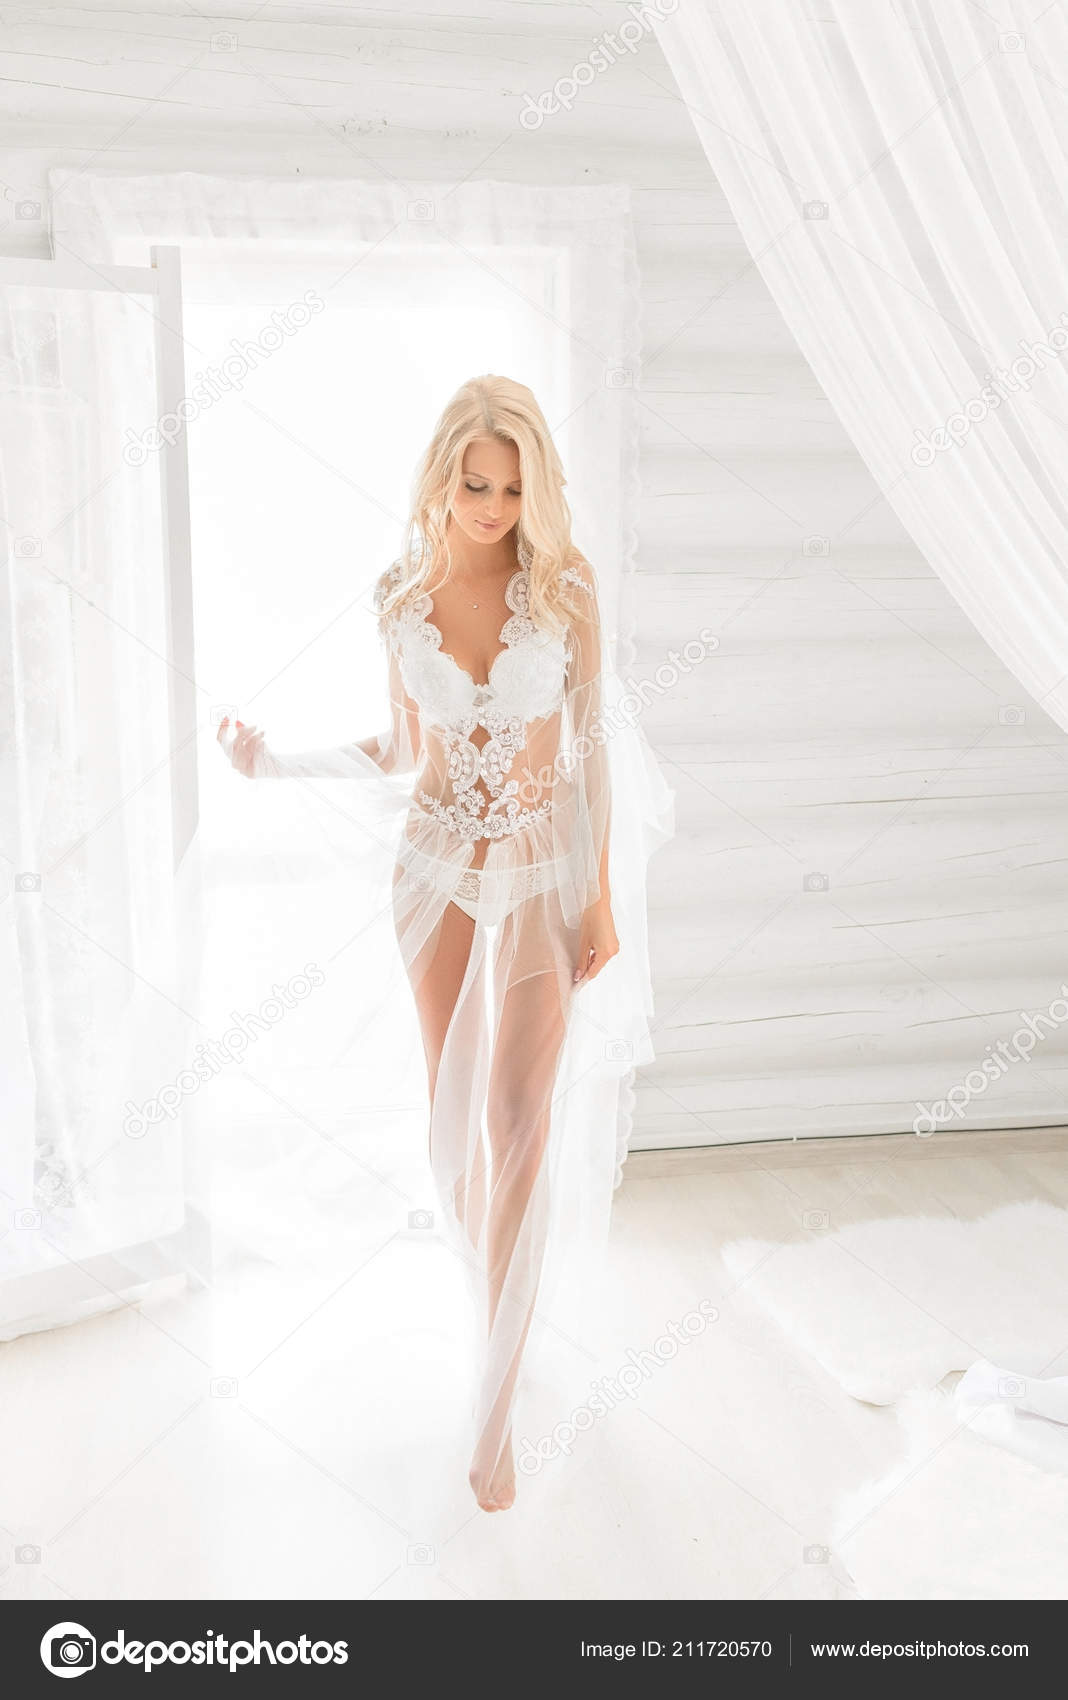 413f9b522 Wedding morning of a beautiful bride walking in a lighted room with only white  lace underwear on. Beautiful blonde — Photo by ...